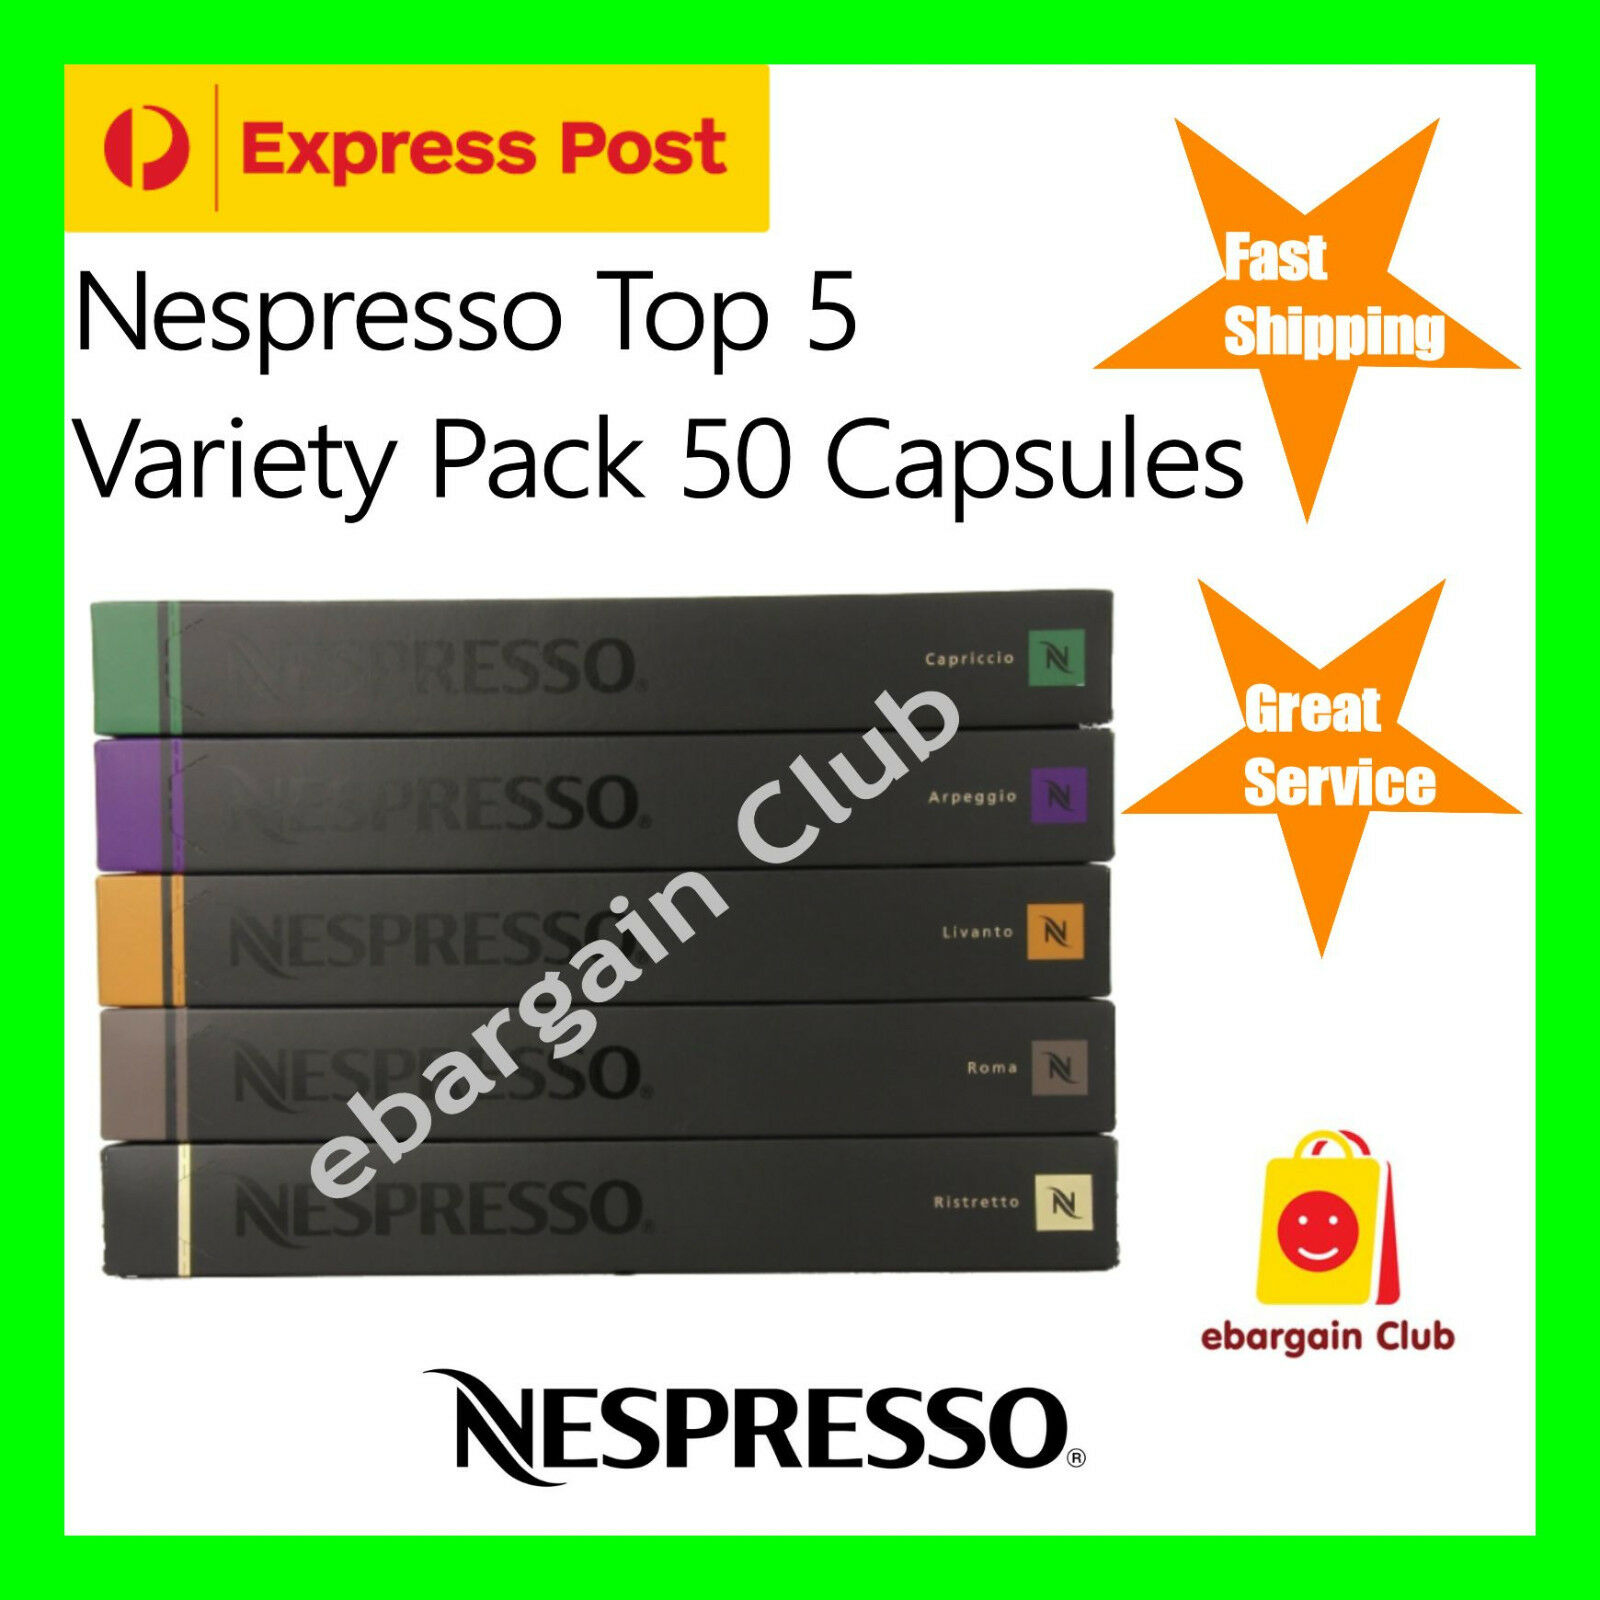 50 Capsules Nespresso Coffee Variety Pack Mixed Pods eBargainClub Top 5 Popular